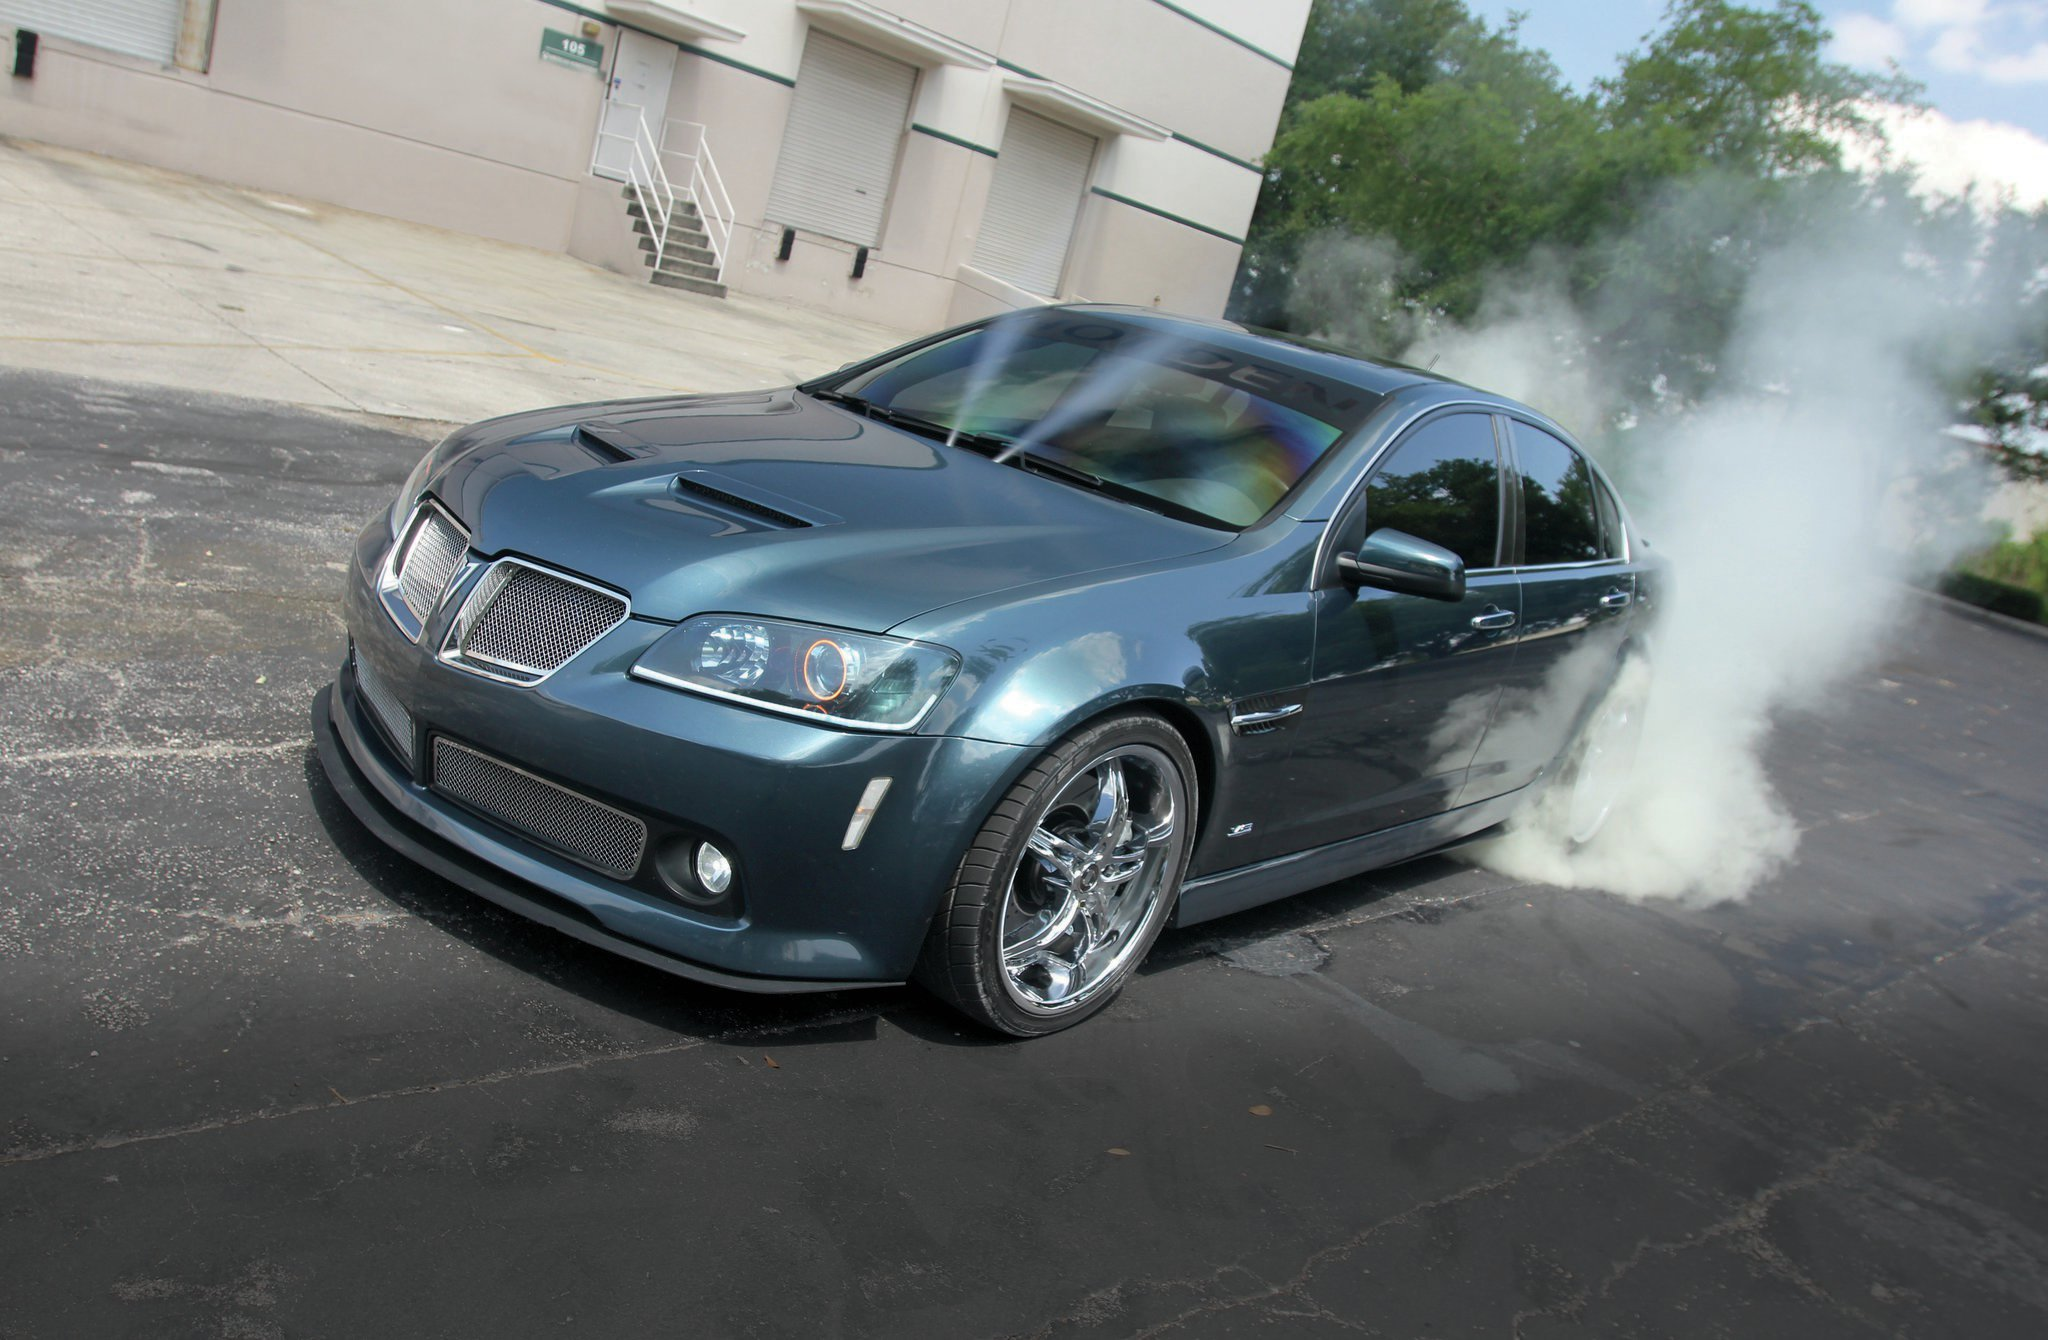 Pontiac gt photo - 6